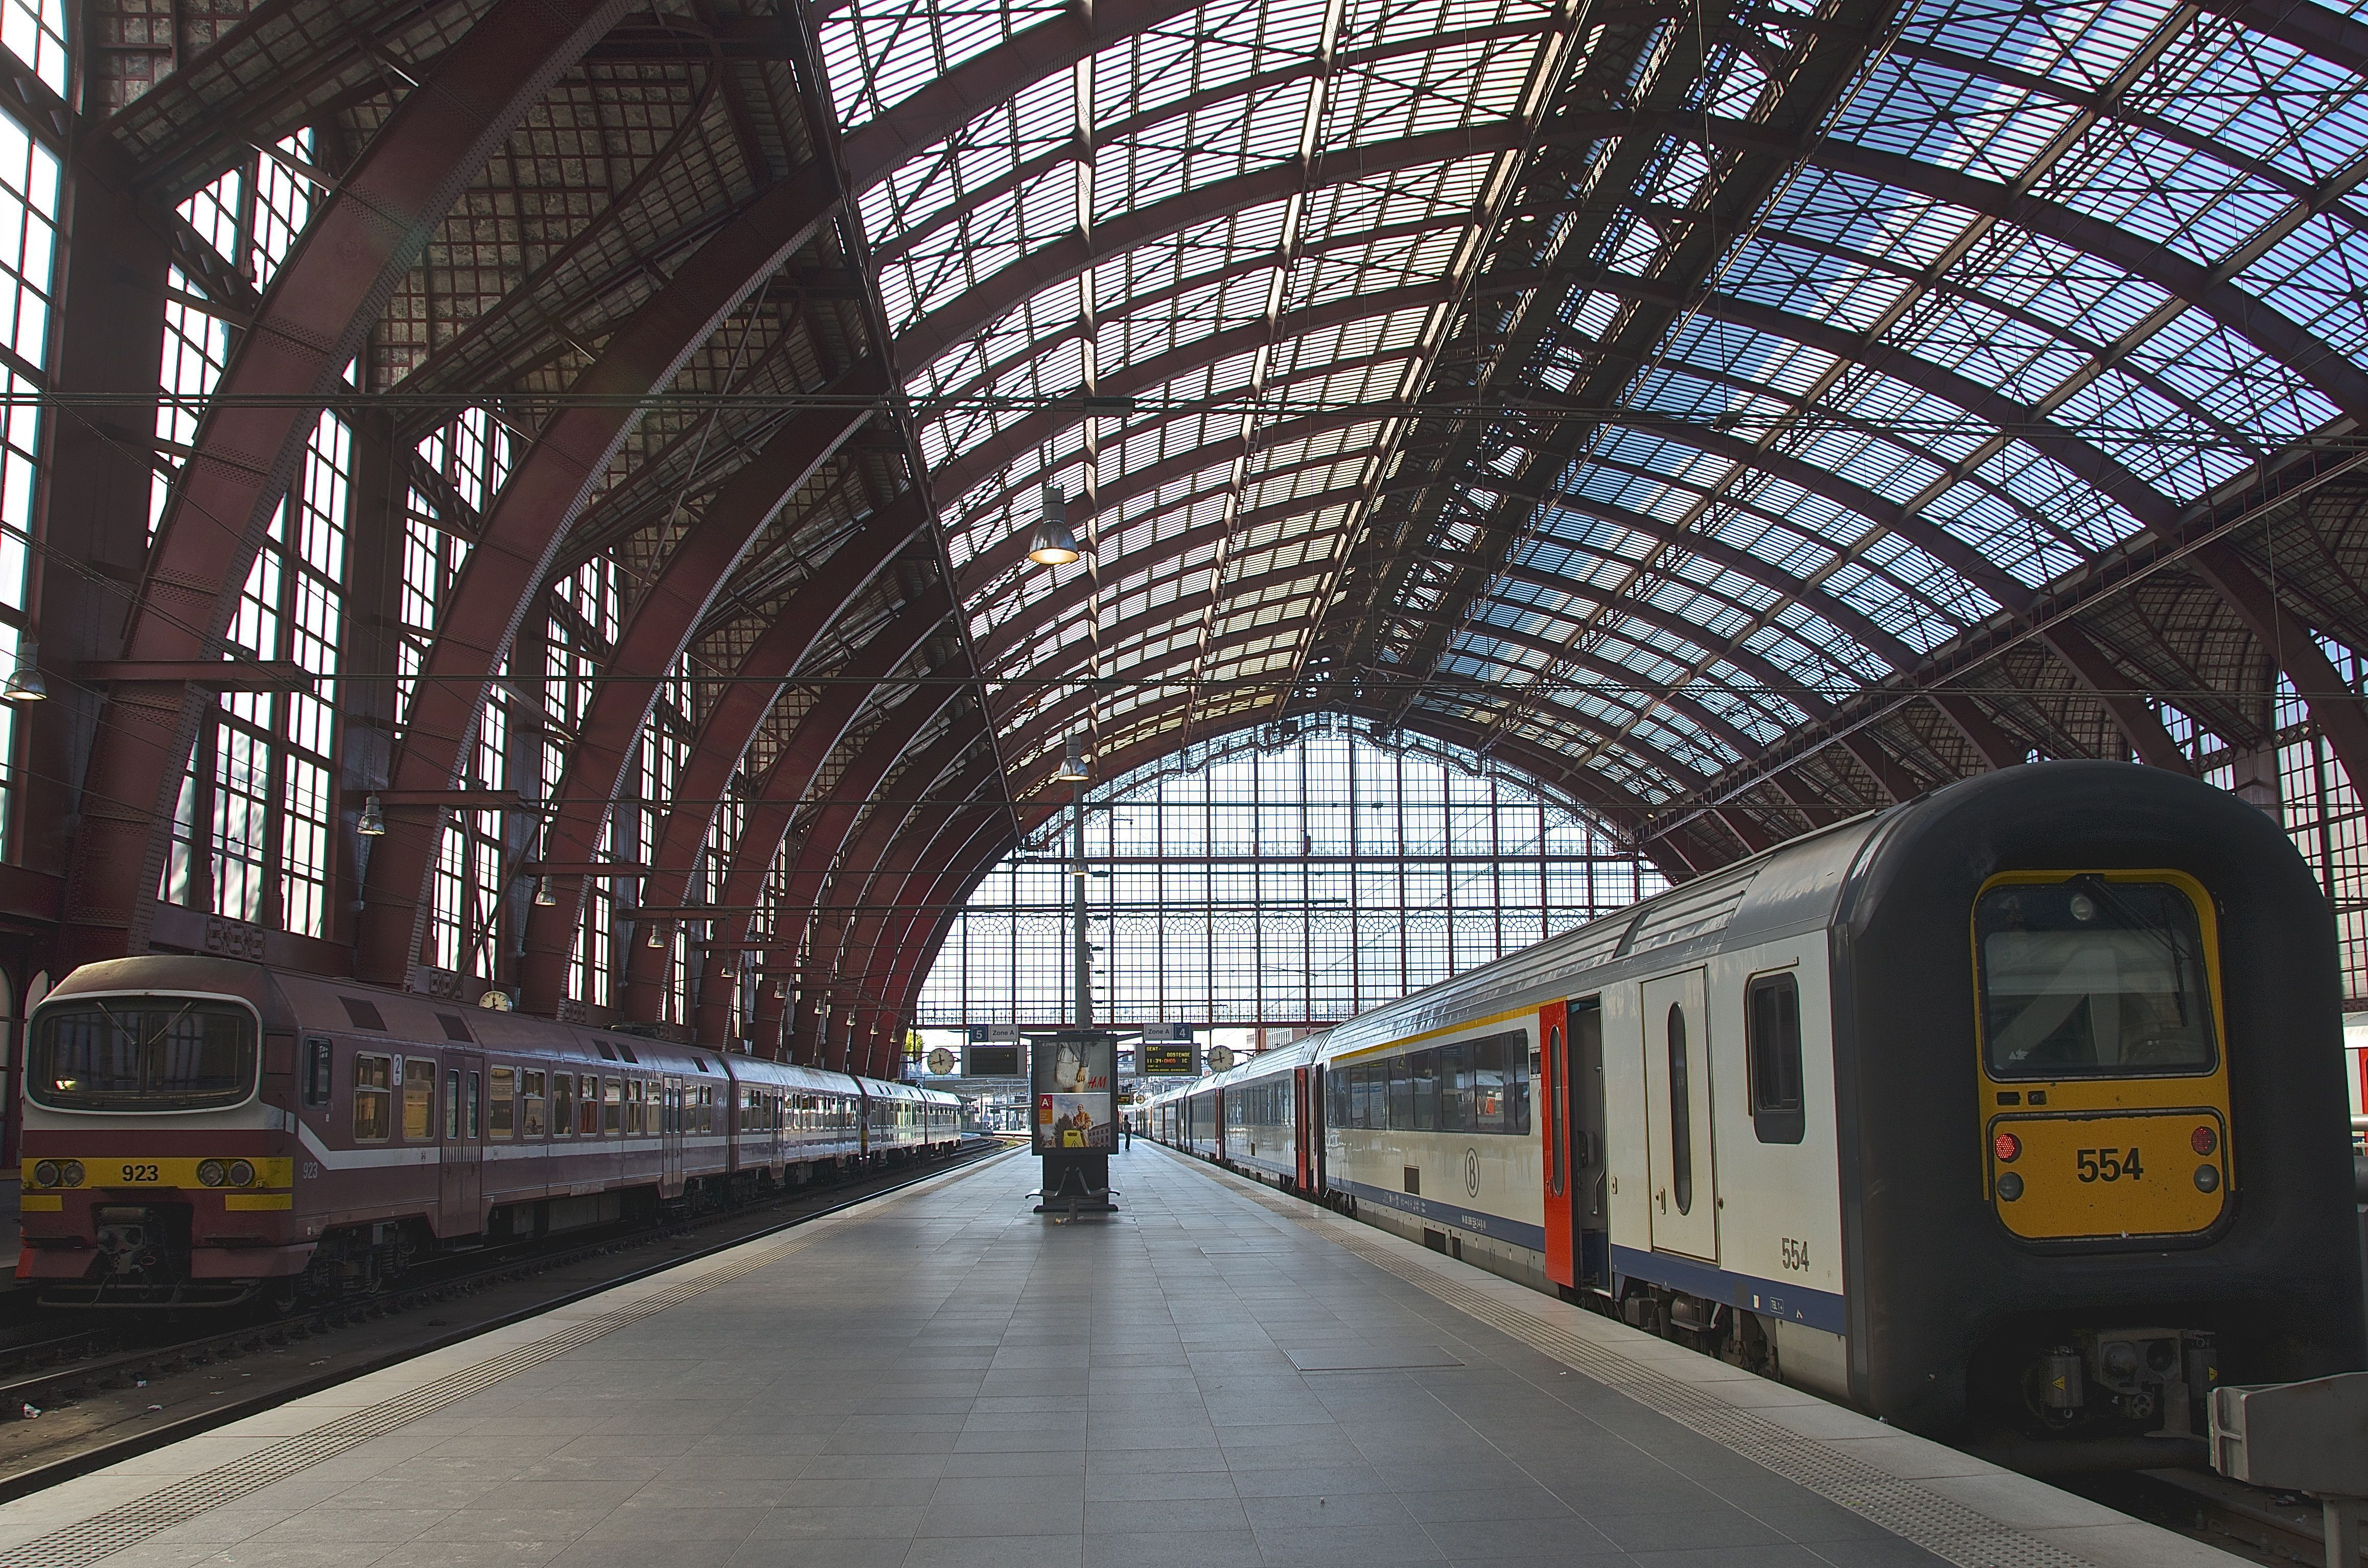 Train Station Wallpapers Backgrounds